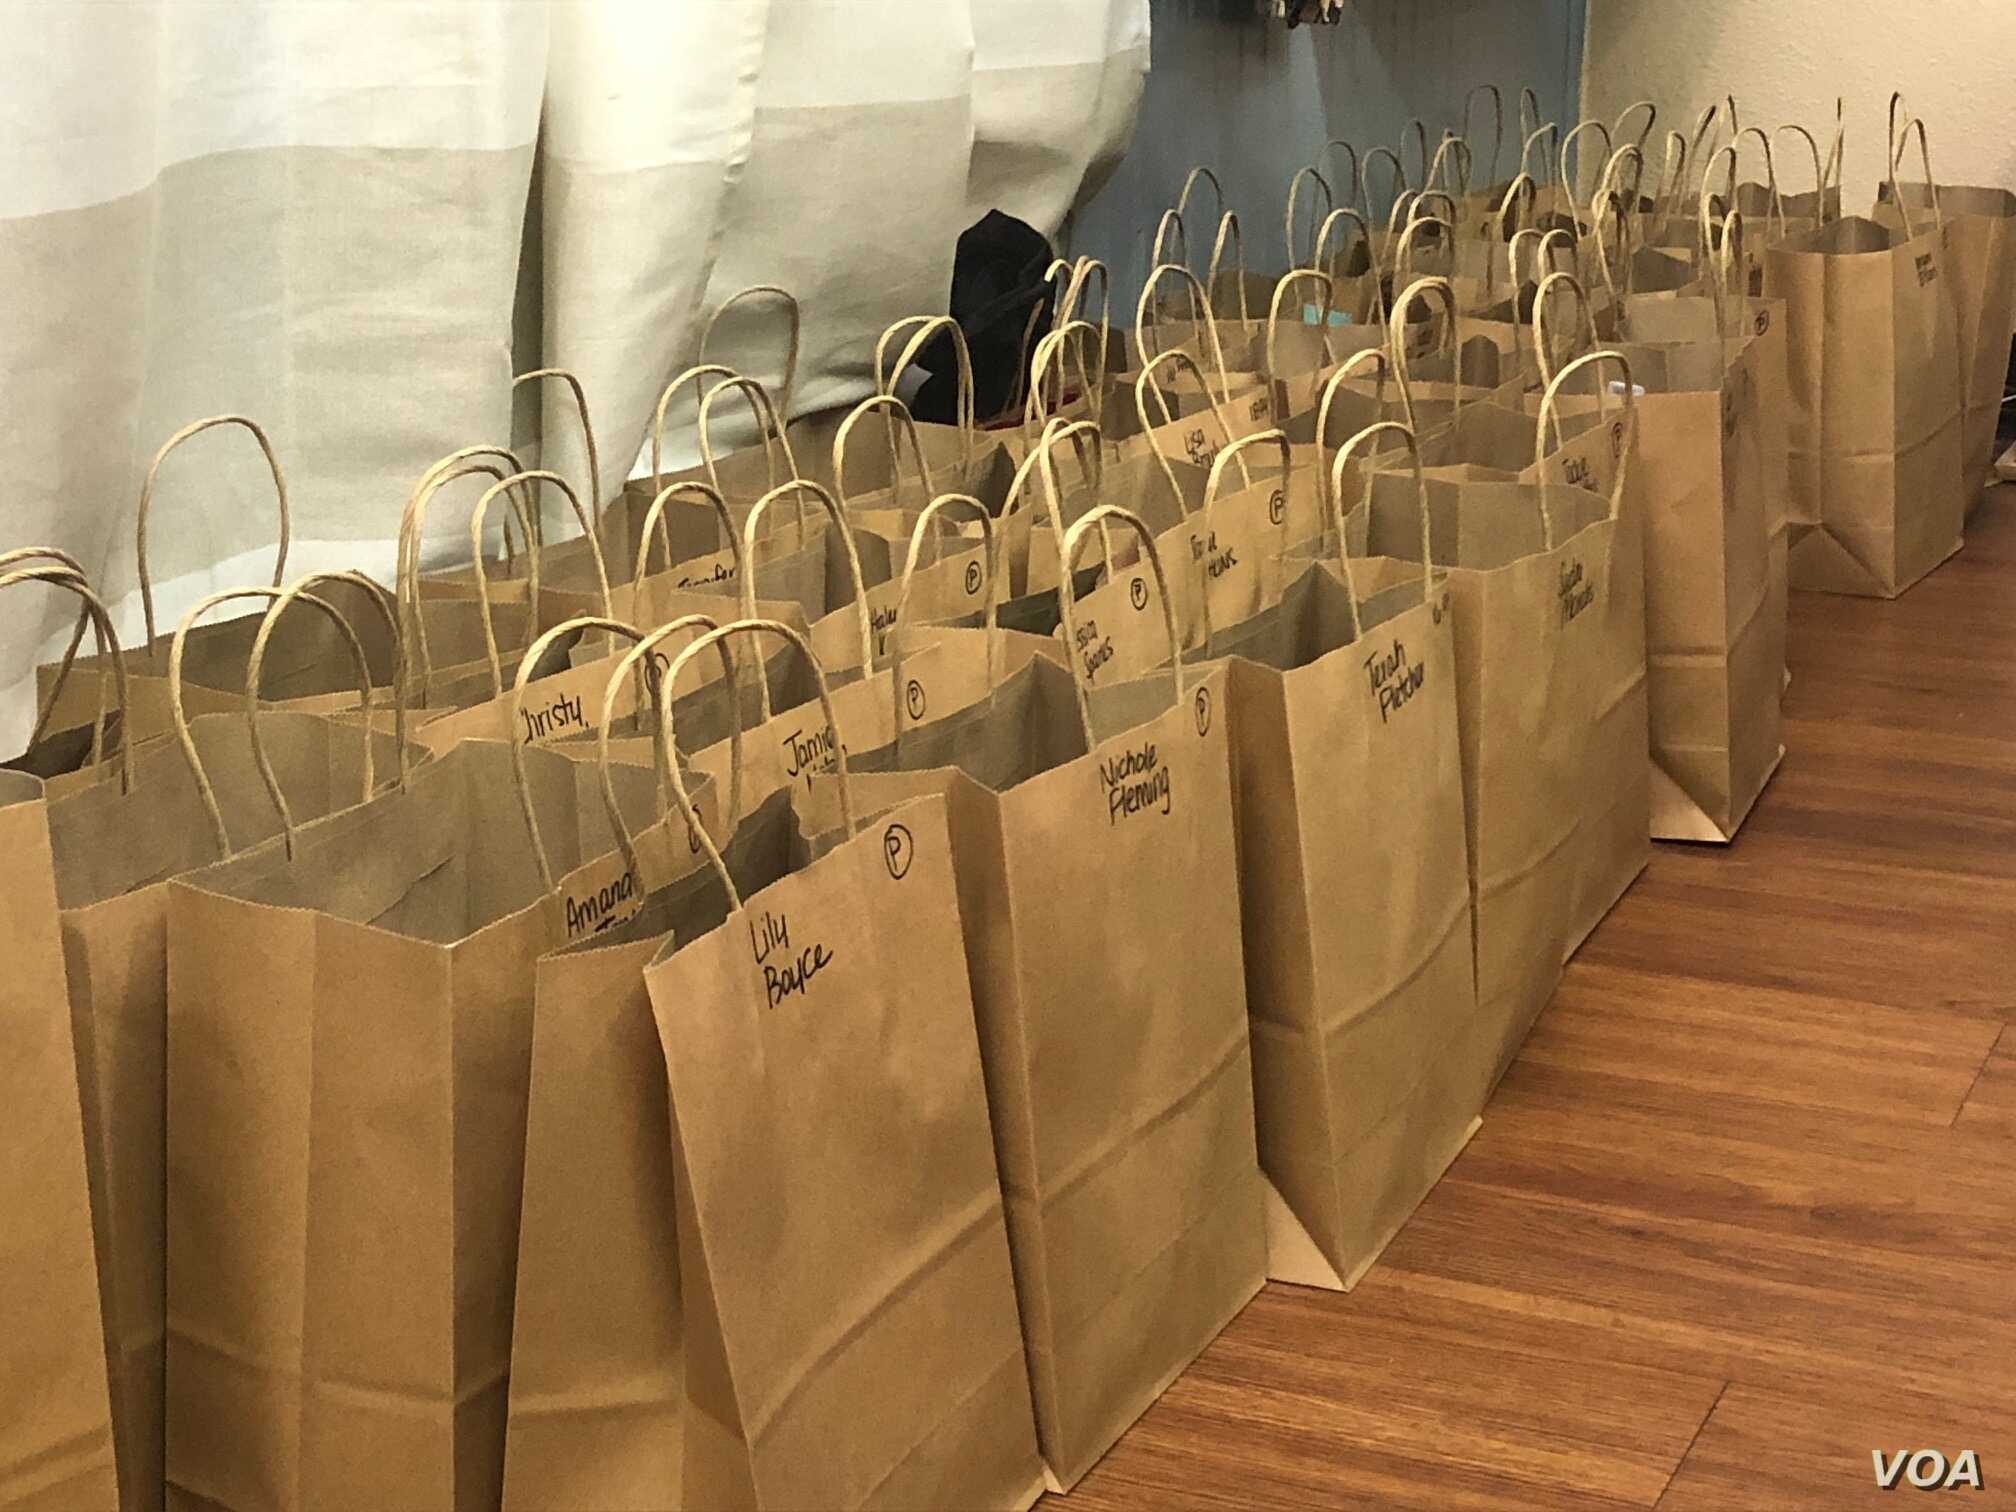 A week's worth of online orders are ready for pickup at ASK Apparel's Arkansas brick-and-mortar store in Heber Springs, Oct. 12, 2018.